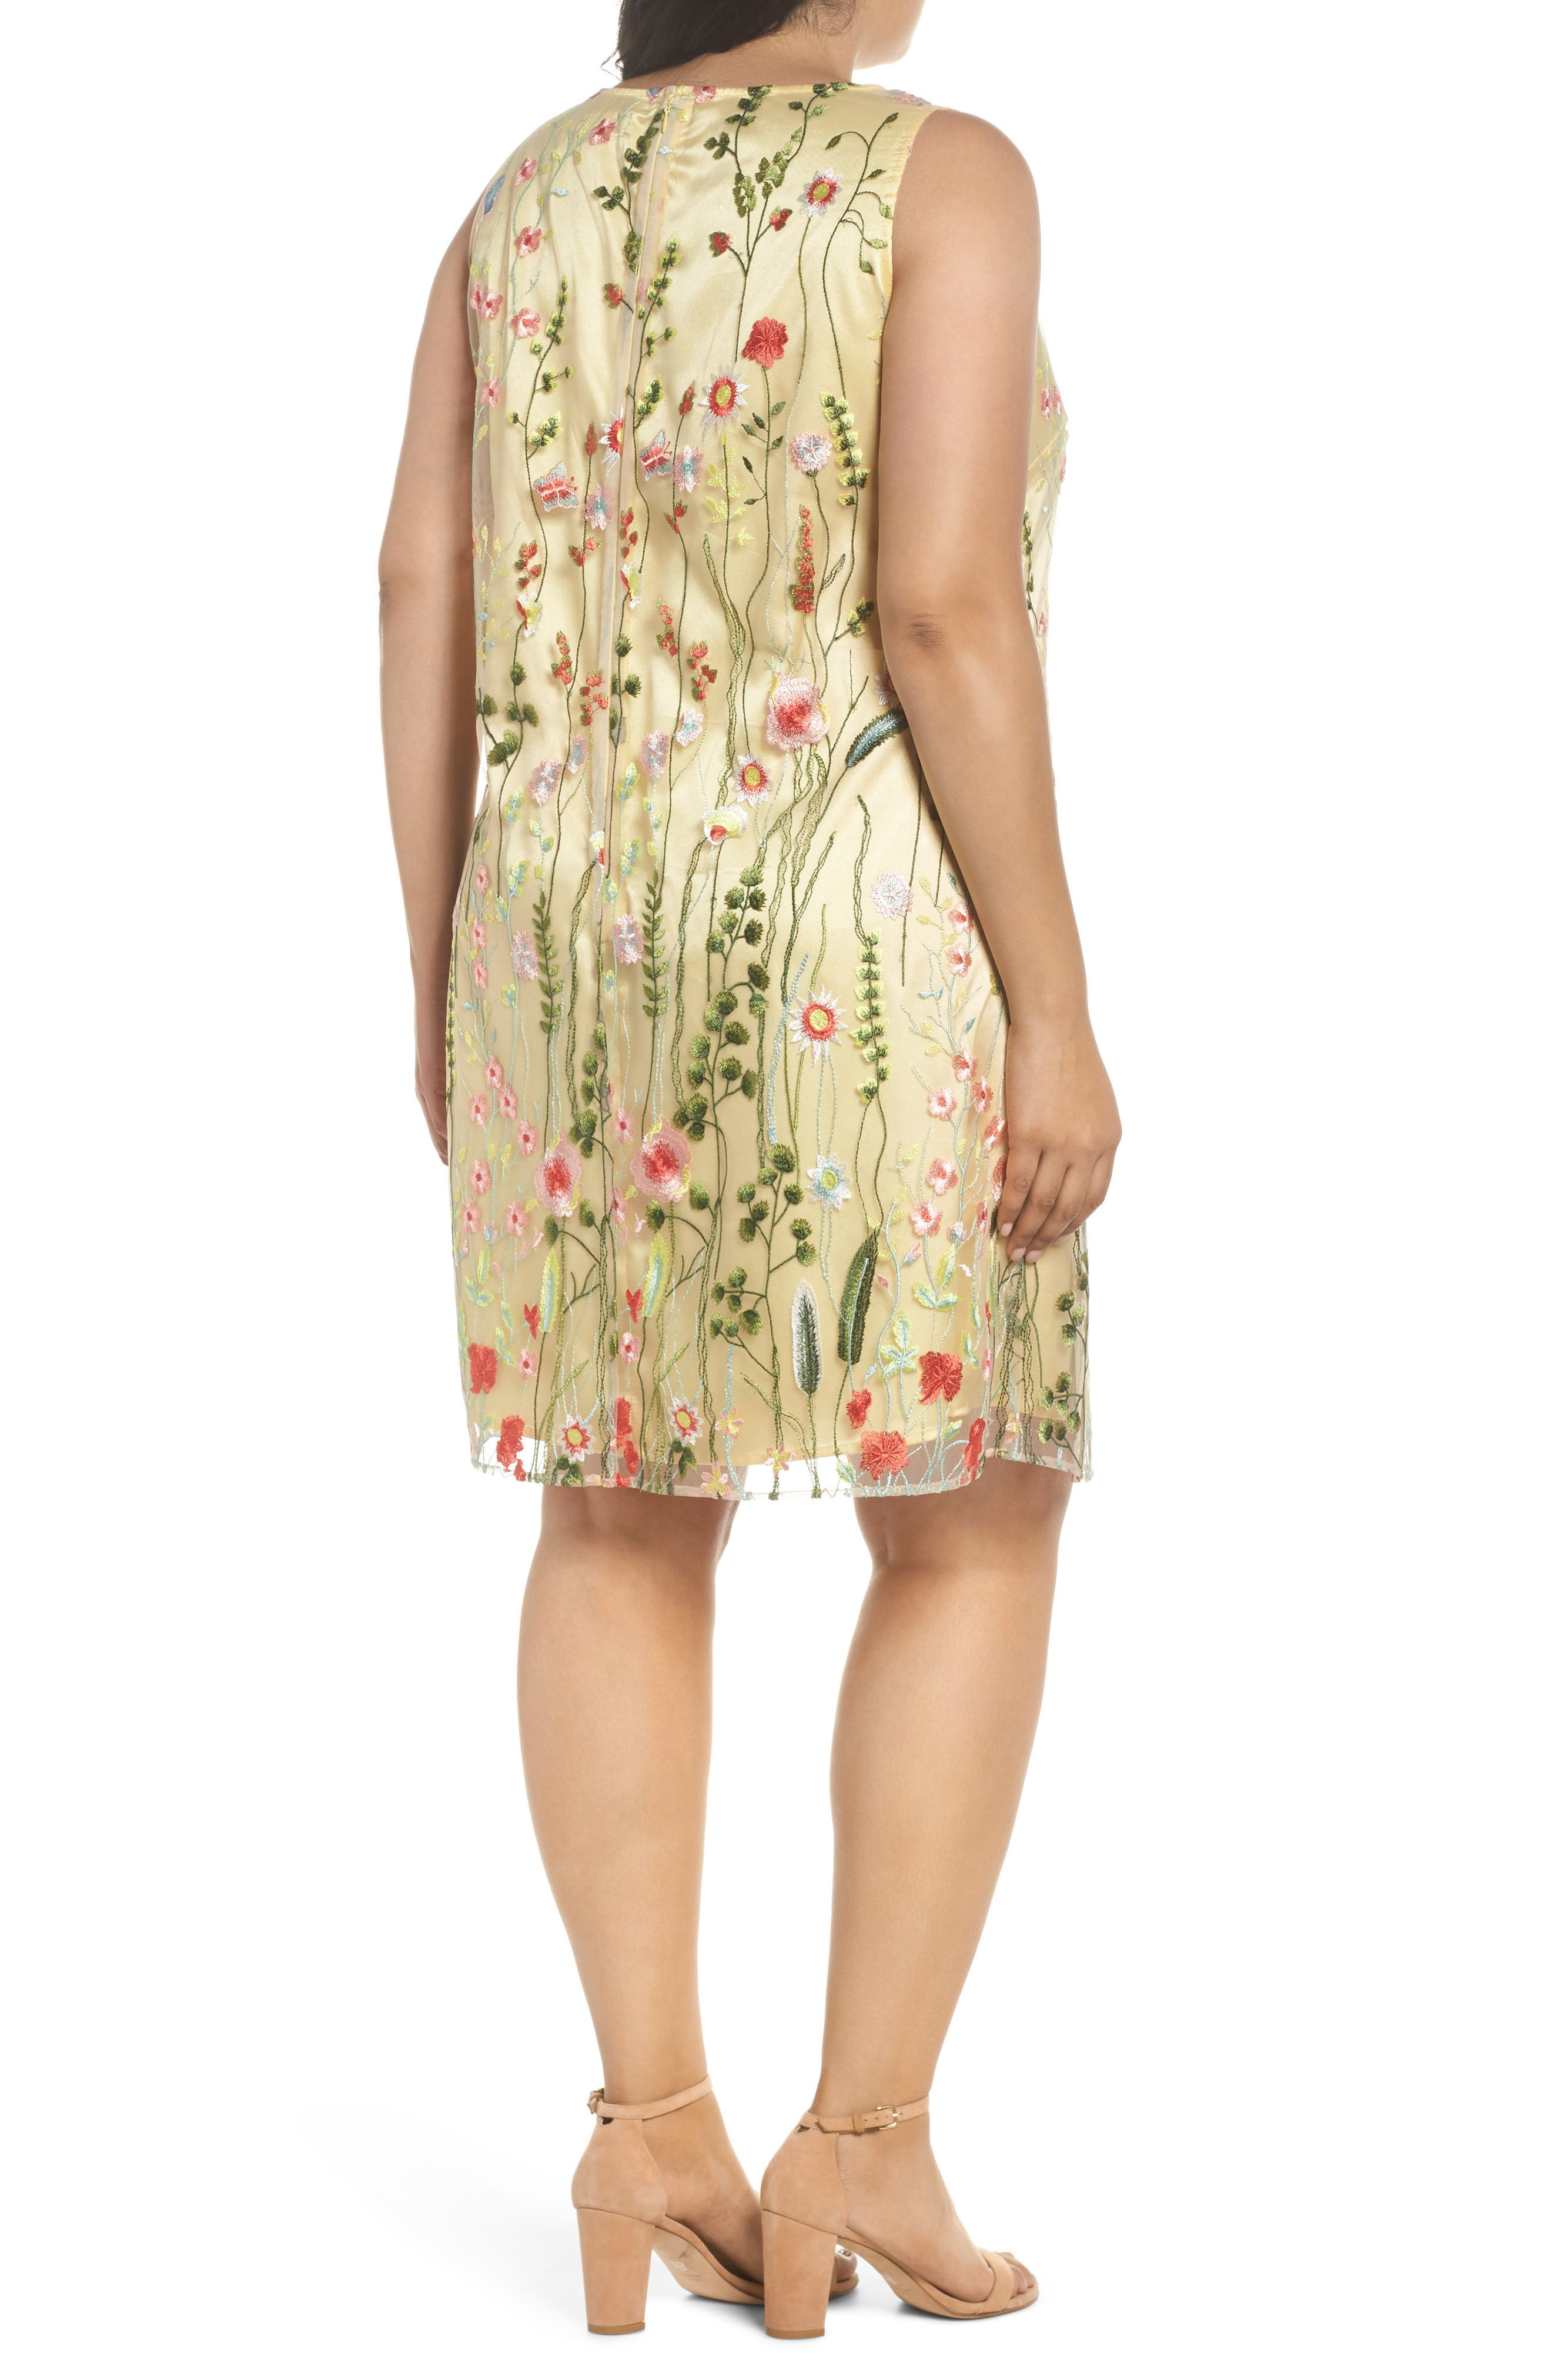 Floral Embroidered Shift Dress,                             Alternate thumbnail 2, color,                             Gold/ Blush/ Green